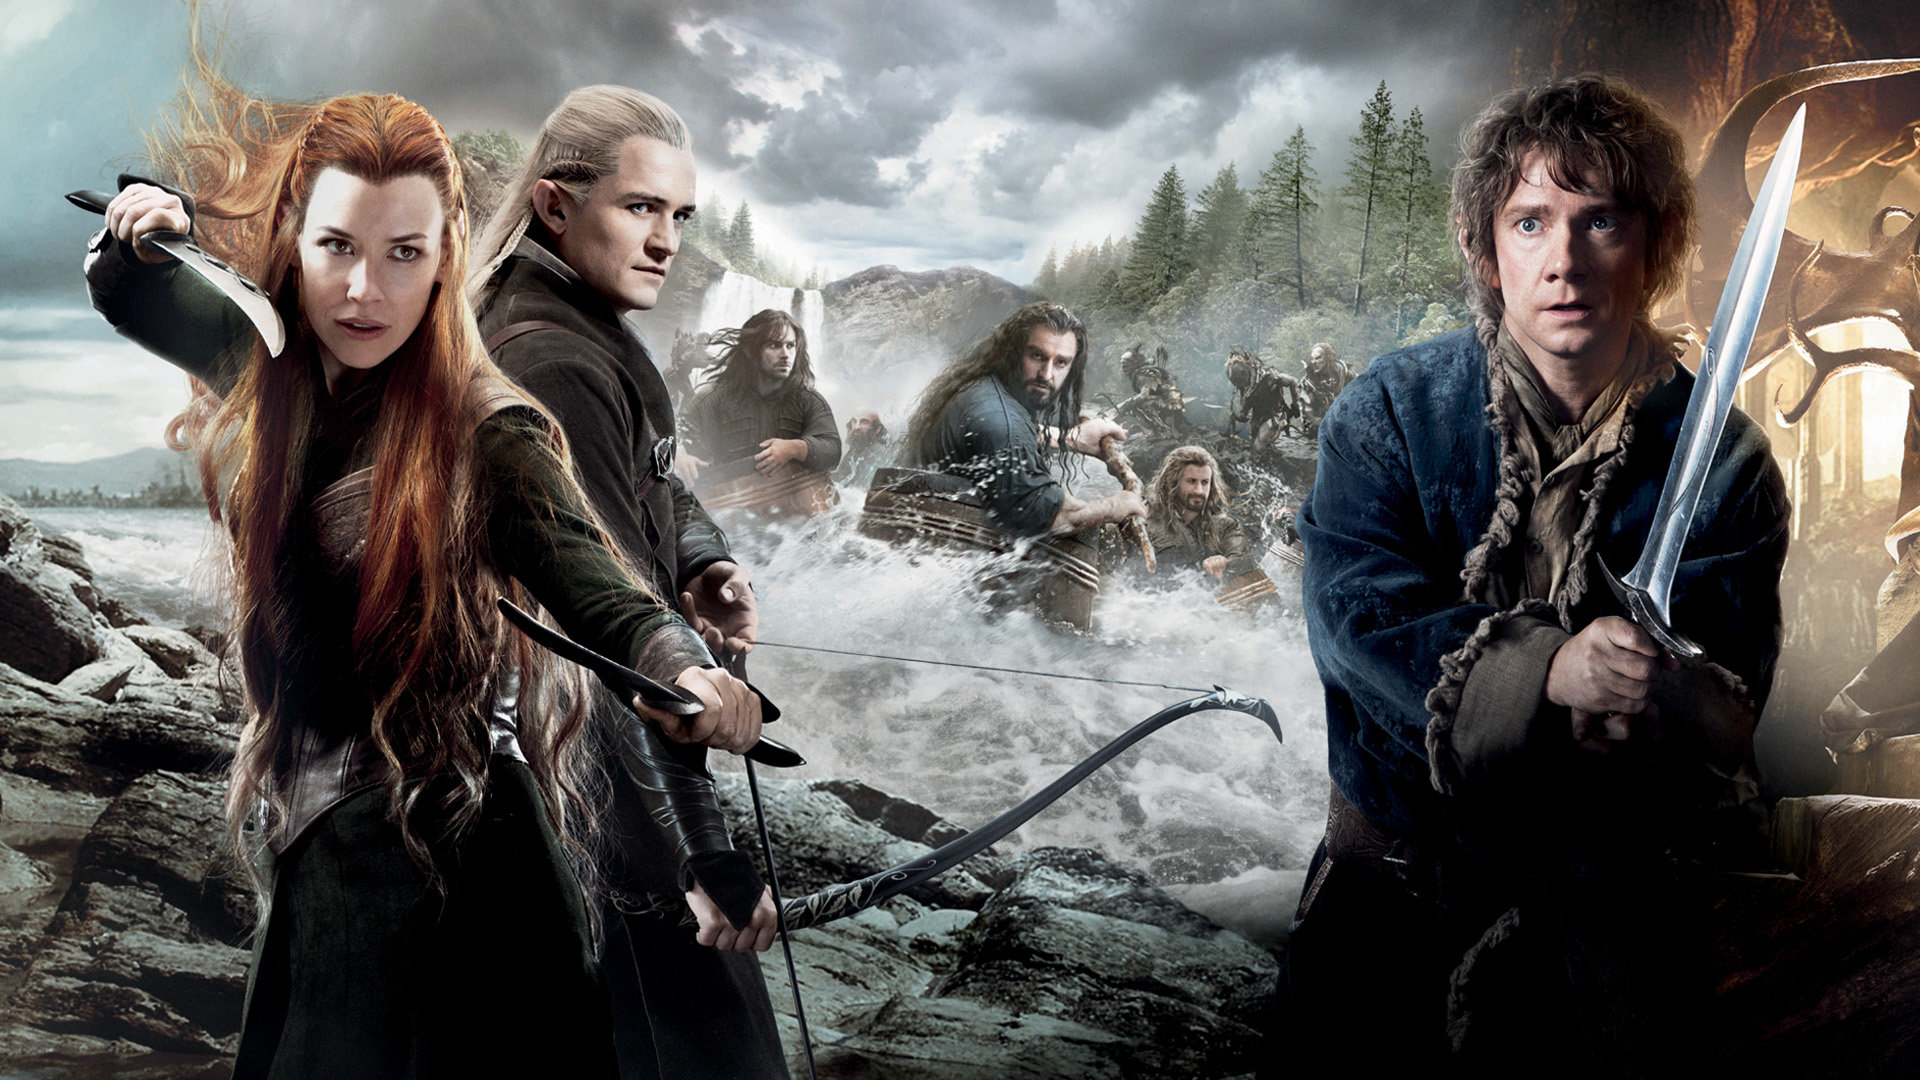 download full hd the hobbit: the desolation of smaug computer